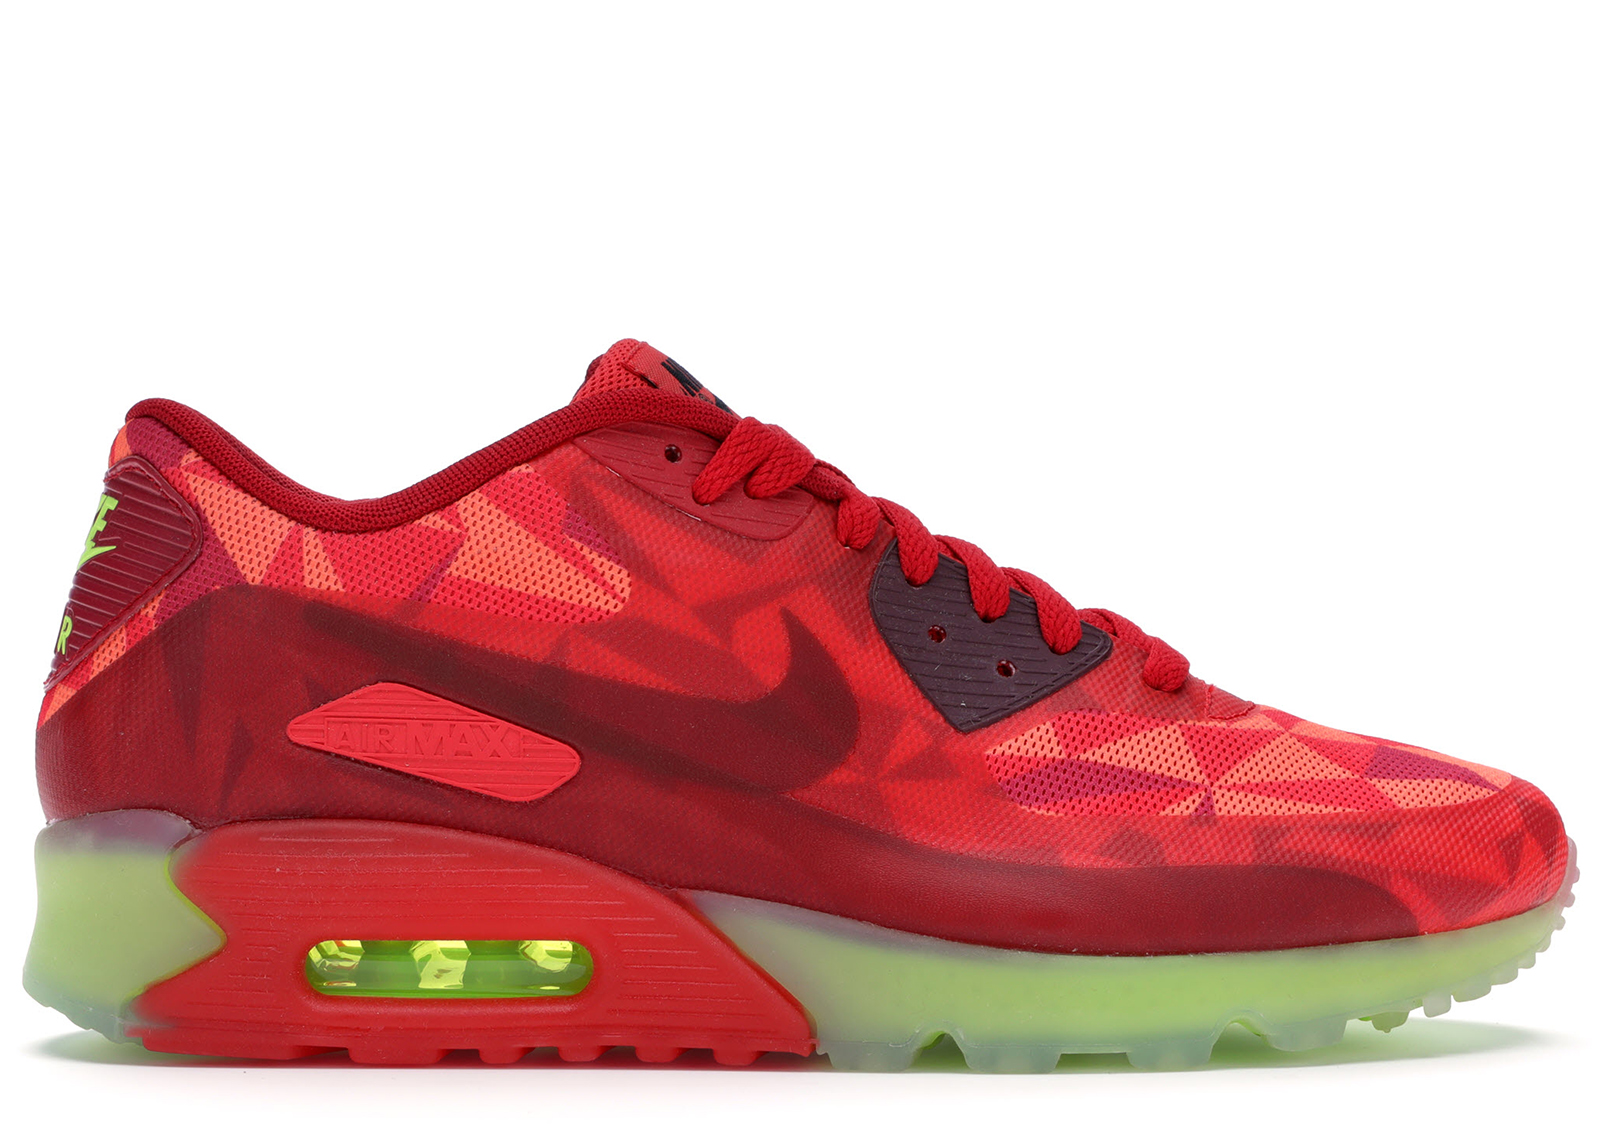 Nike Air Max 90 Ice Gym Red - 631748-600